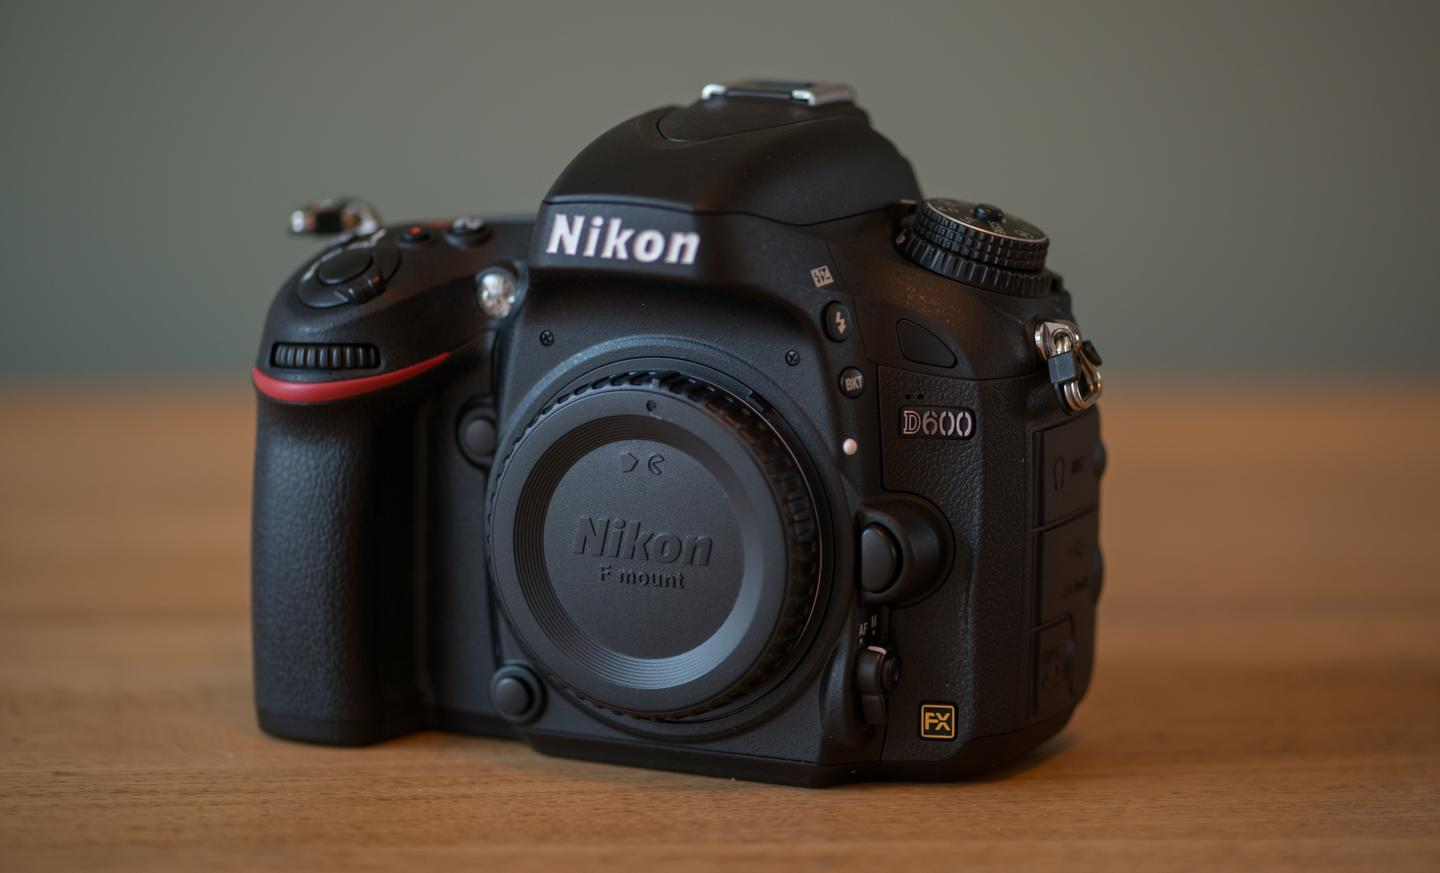 The Nikon D600 is a 24.3-megapixel full-frame DSLR